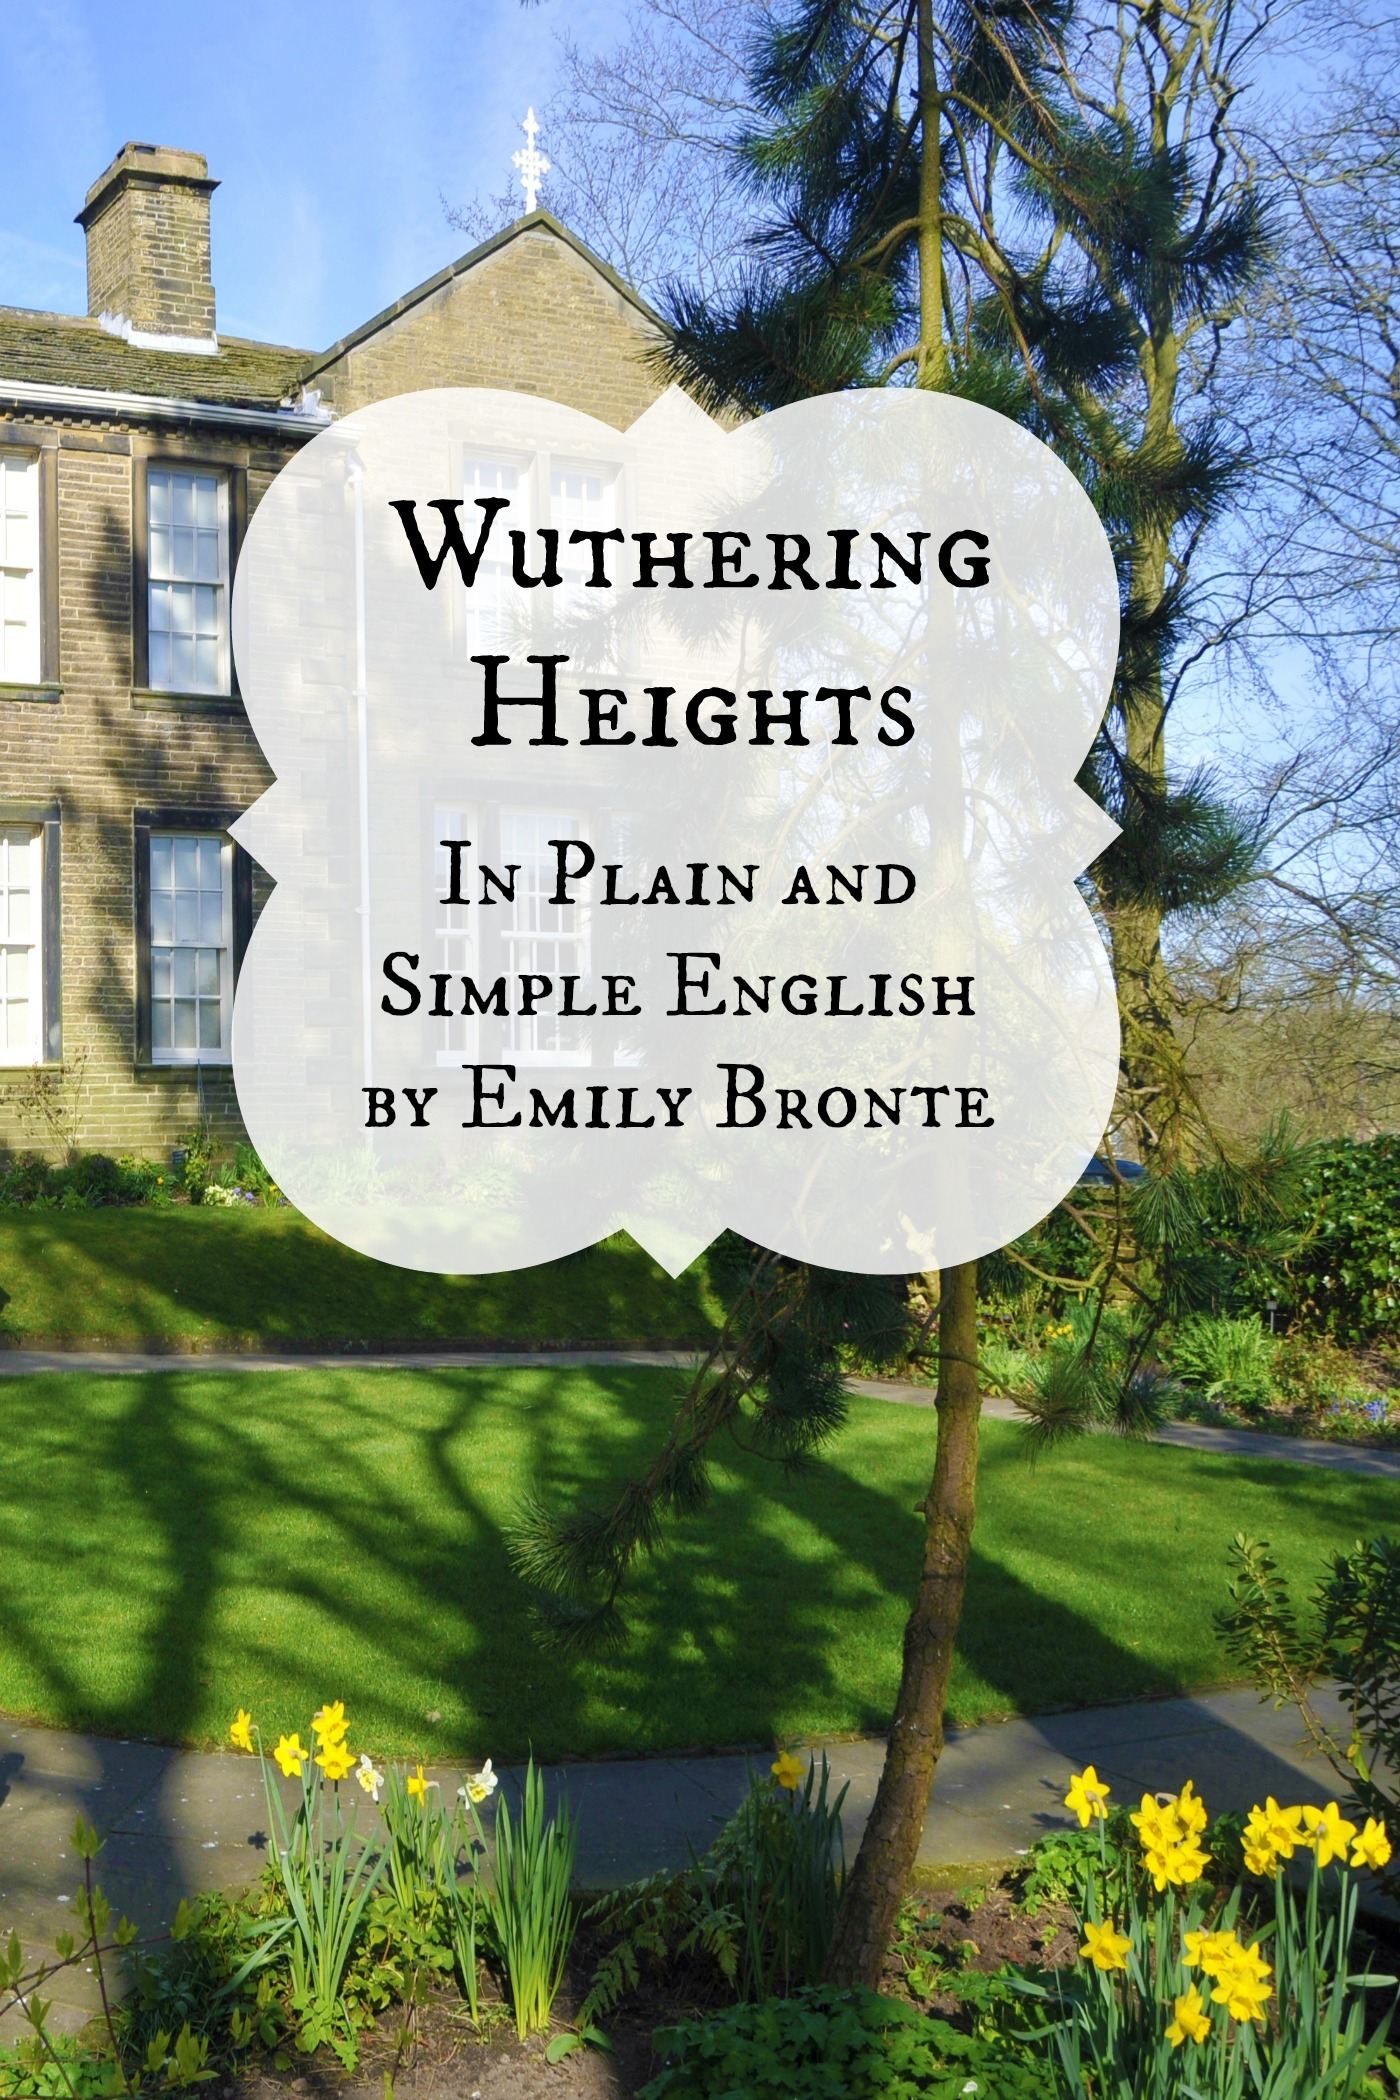 an analysis of heathcliff in wuthering heights a novel by emily bronte The character of heathcliff in wuthering heights wuthering heights is a notable work by emily bronte despite being a tragic and dark novel it is full of engaging characters.